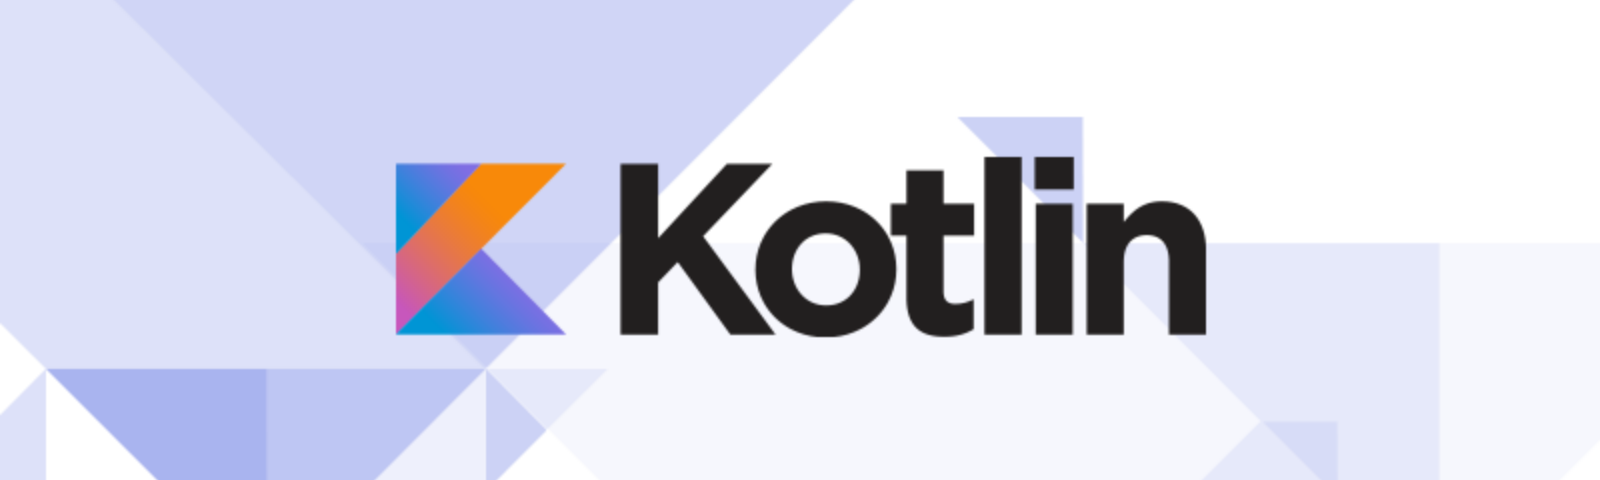 Learning Resources for Kotlin